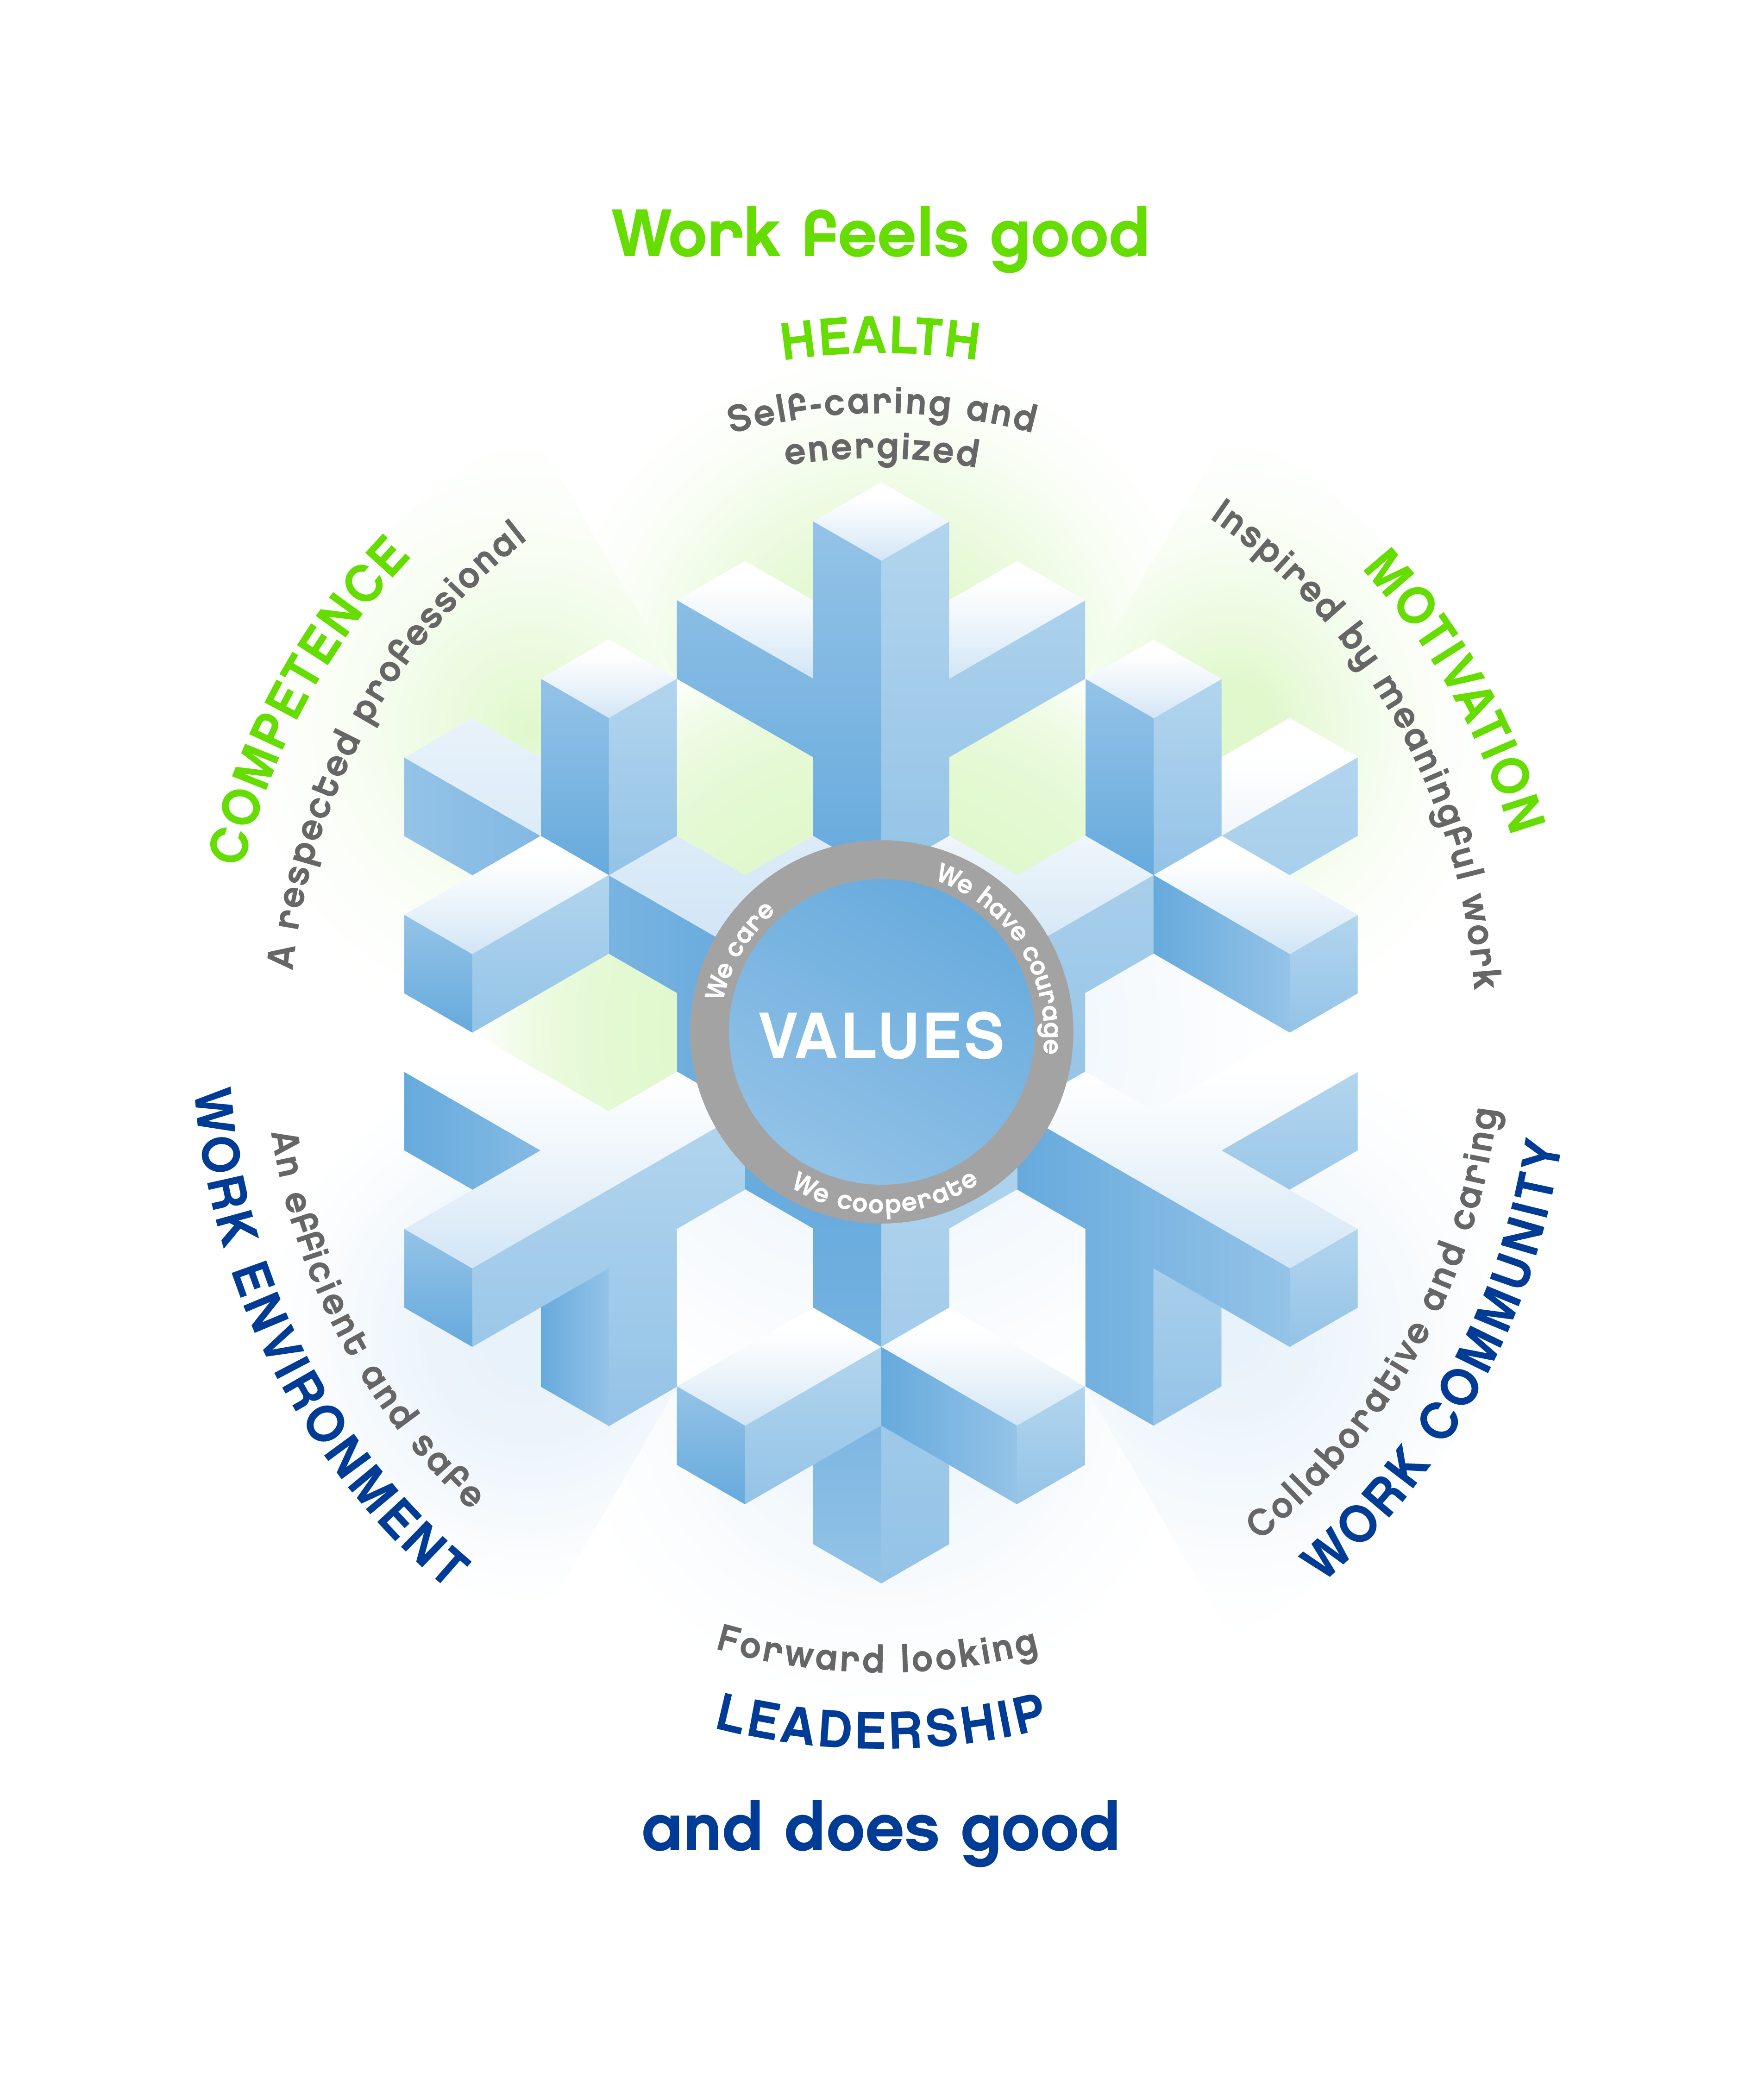 Wellbeing at work is important to us at Neste. We work towards it every day and we want to succeed together.